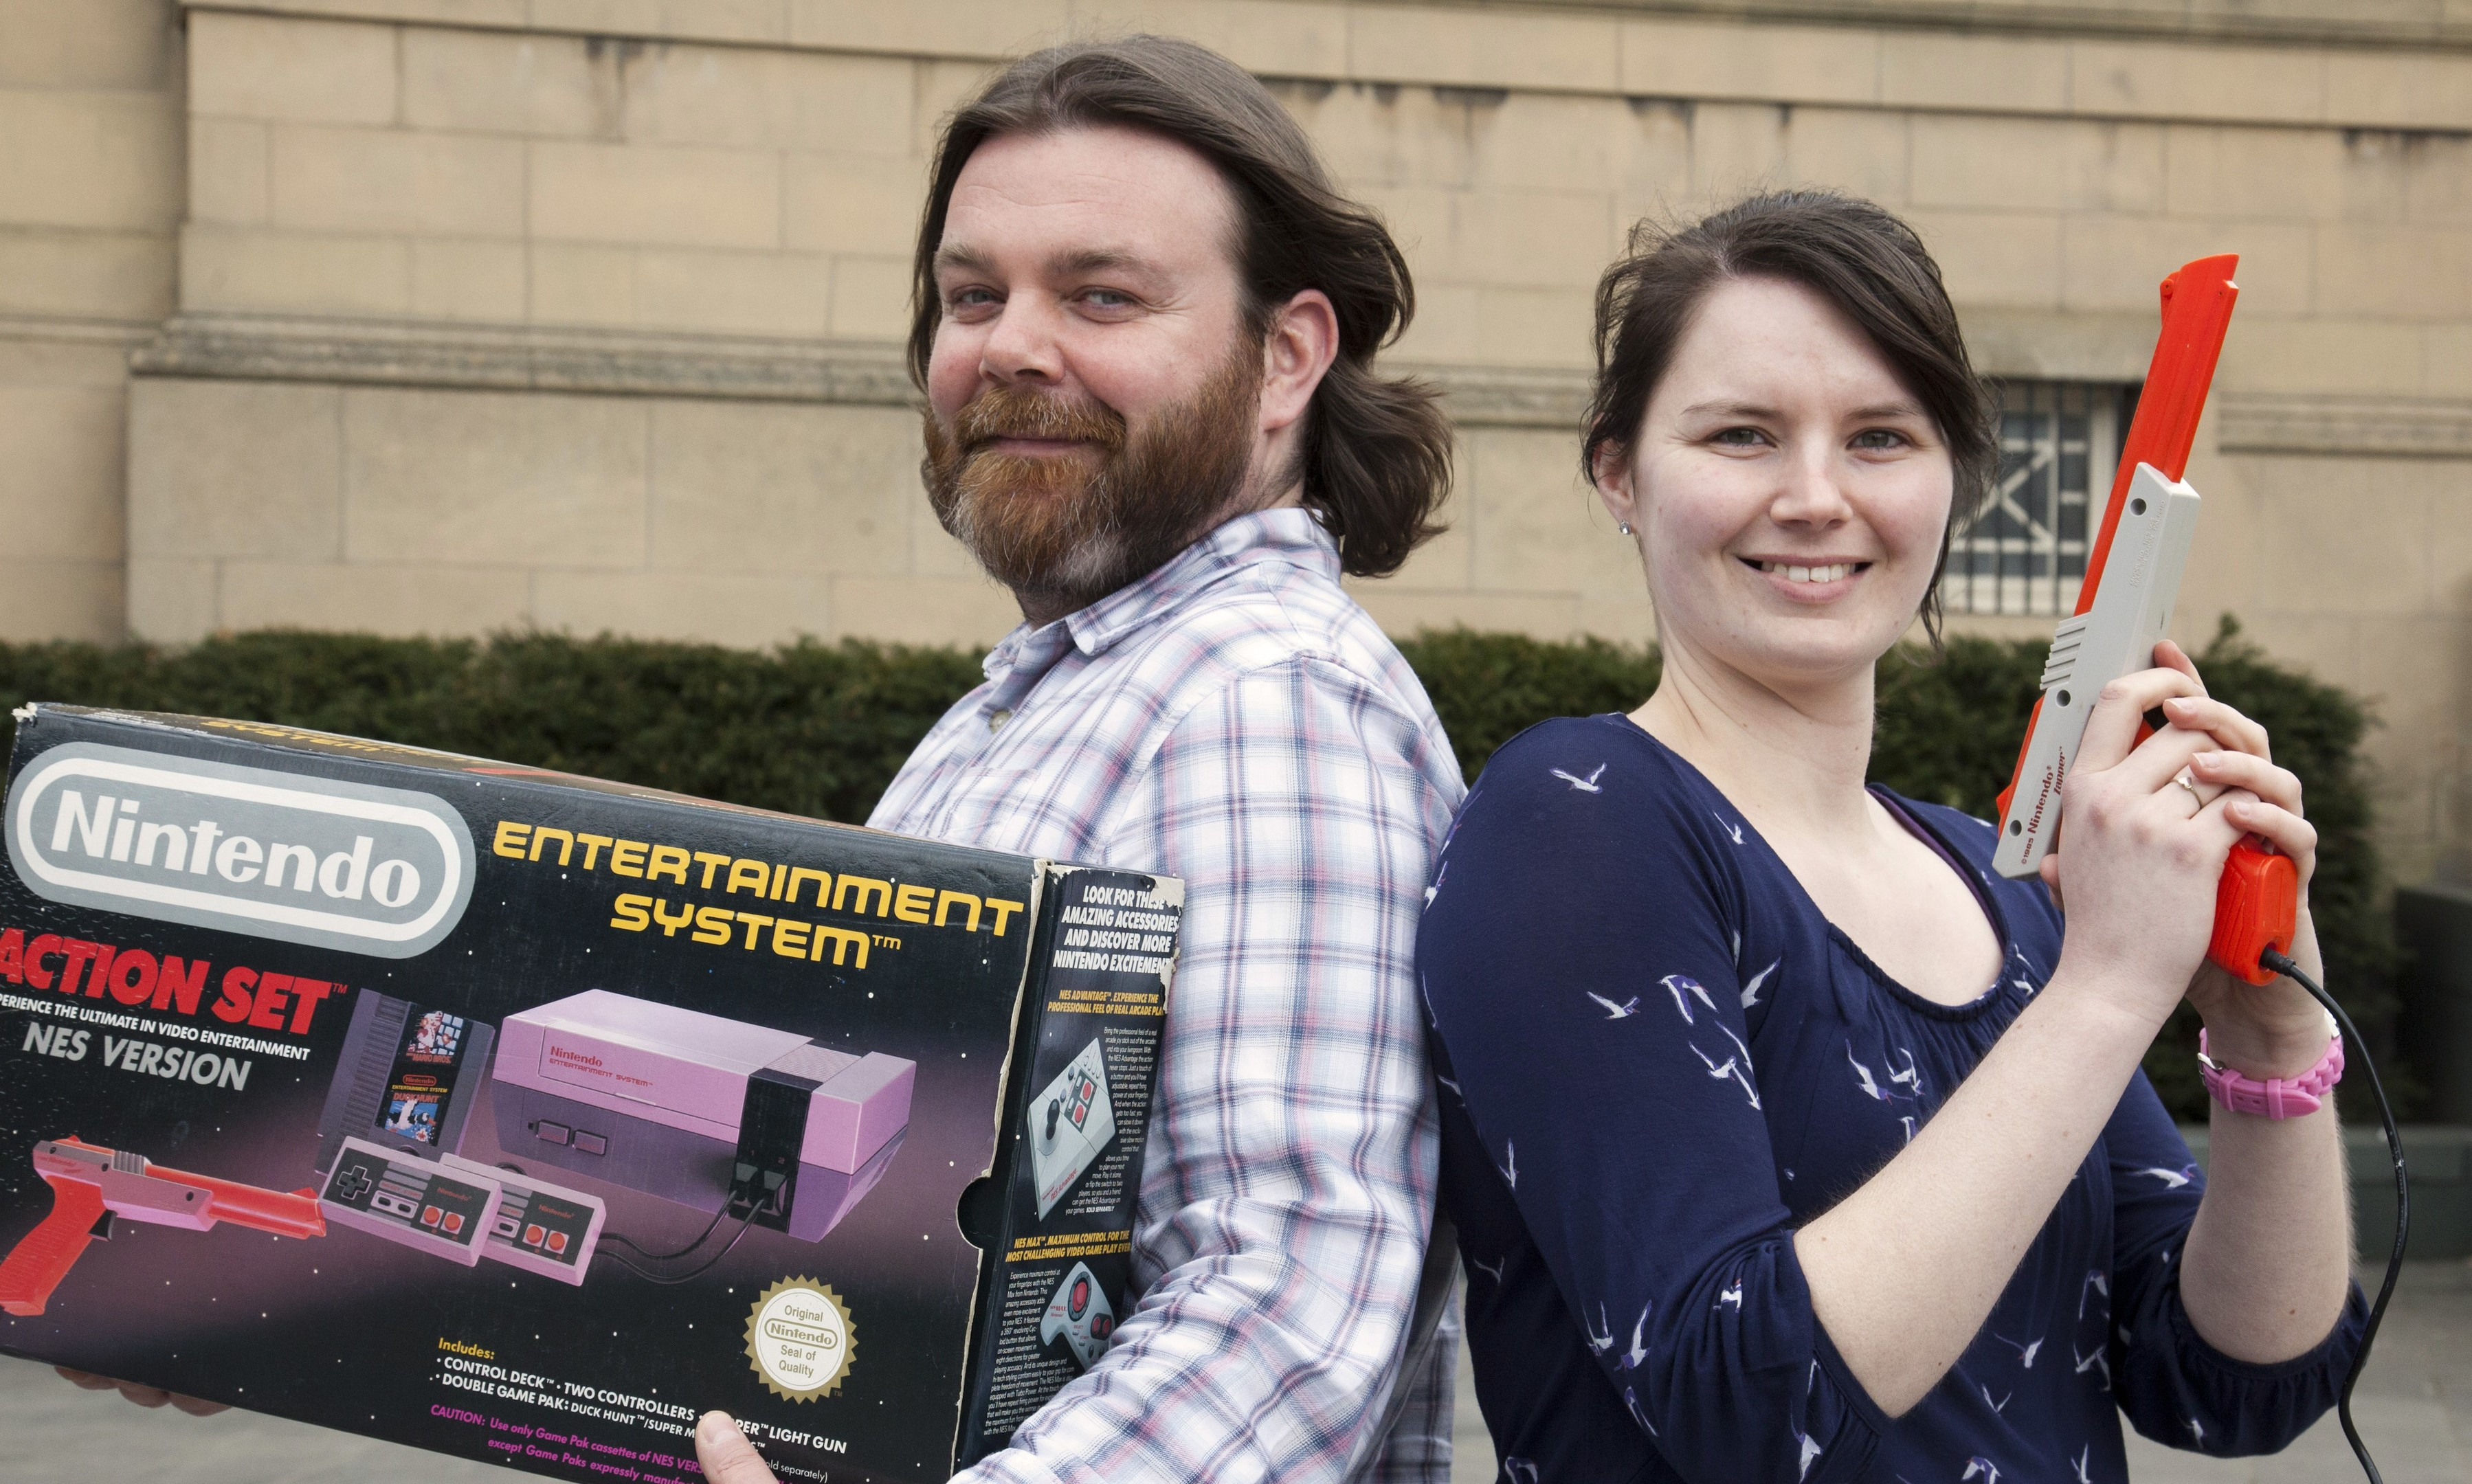 Perth Museum and Art Gallery's design and publicity officer Paul Ritchie and event officer Joanna Dick with a retro NES console.